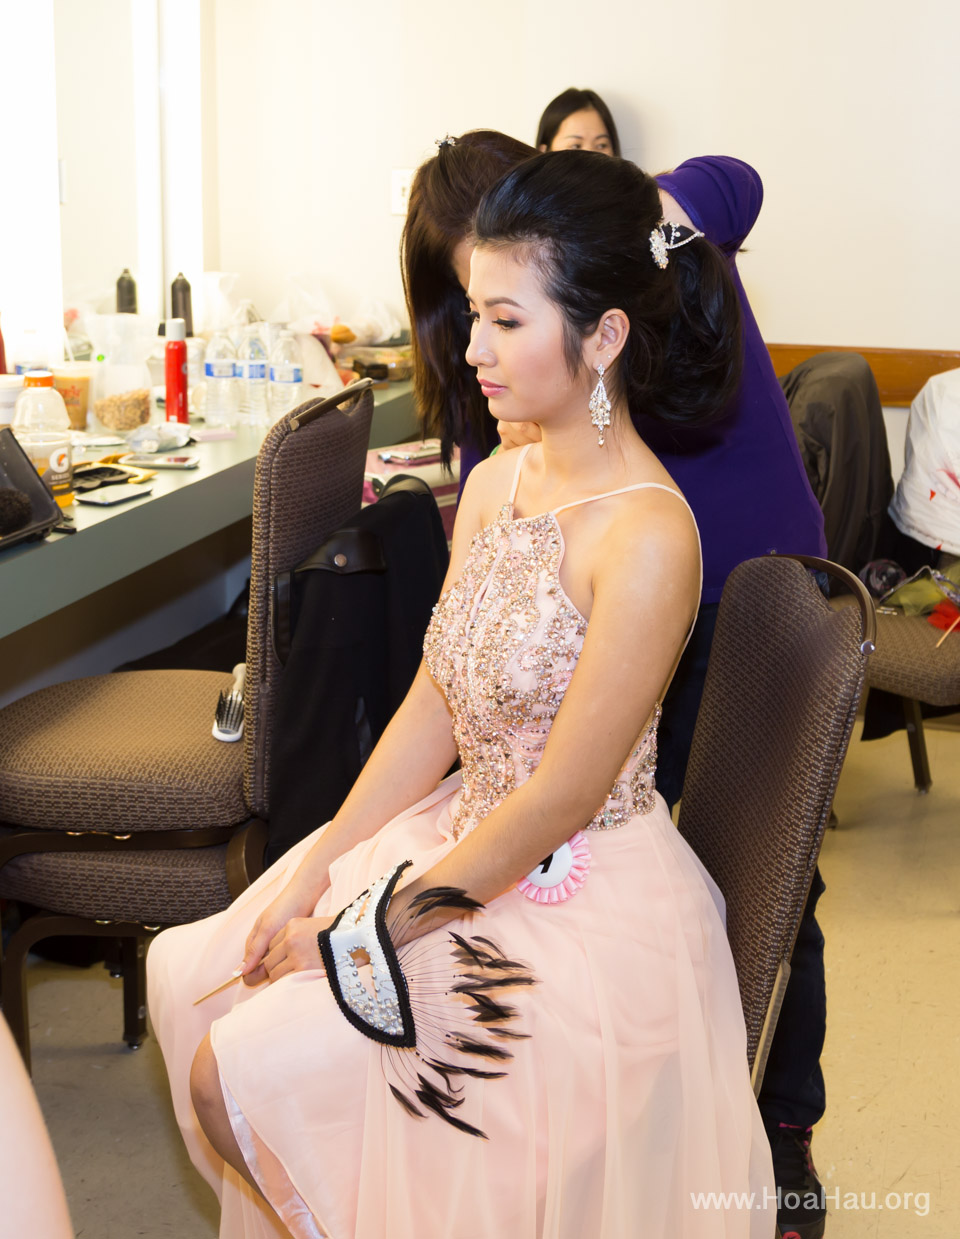 Miss Vietnam of Northern California 2014 - Hoa Hau Ao Dai Bac Cali 2014 - Behind the Scenes - Image 205